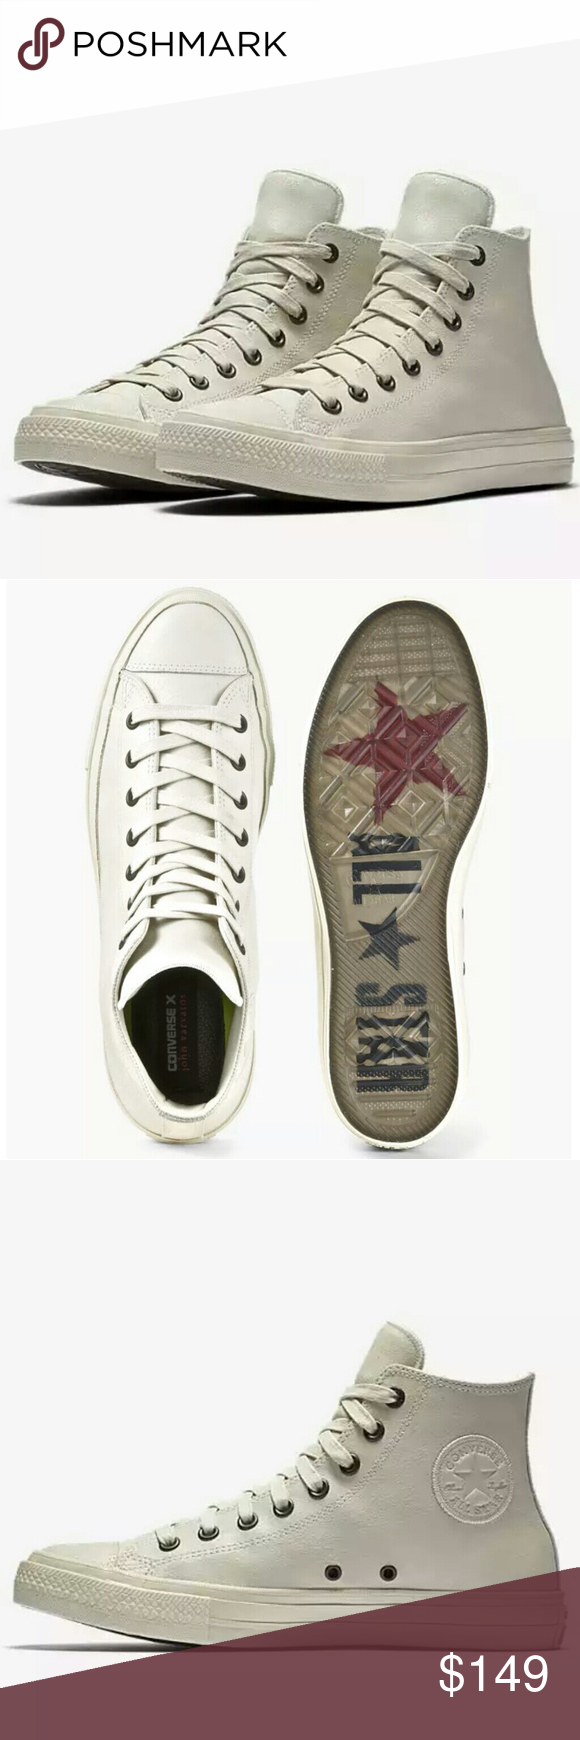 76dfca894299 CONVERSE JOHN VARVATOS CHUCK II 2 COATED LEATHER Hard to find JV with  Lunarlon for extra